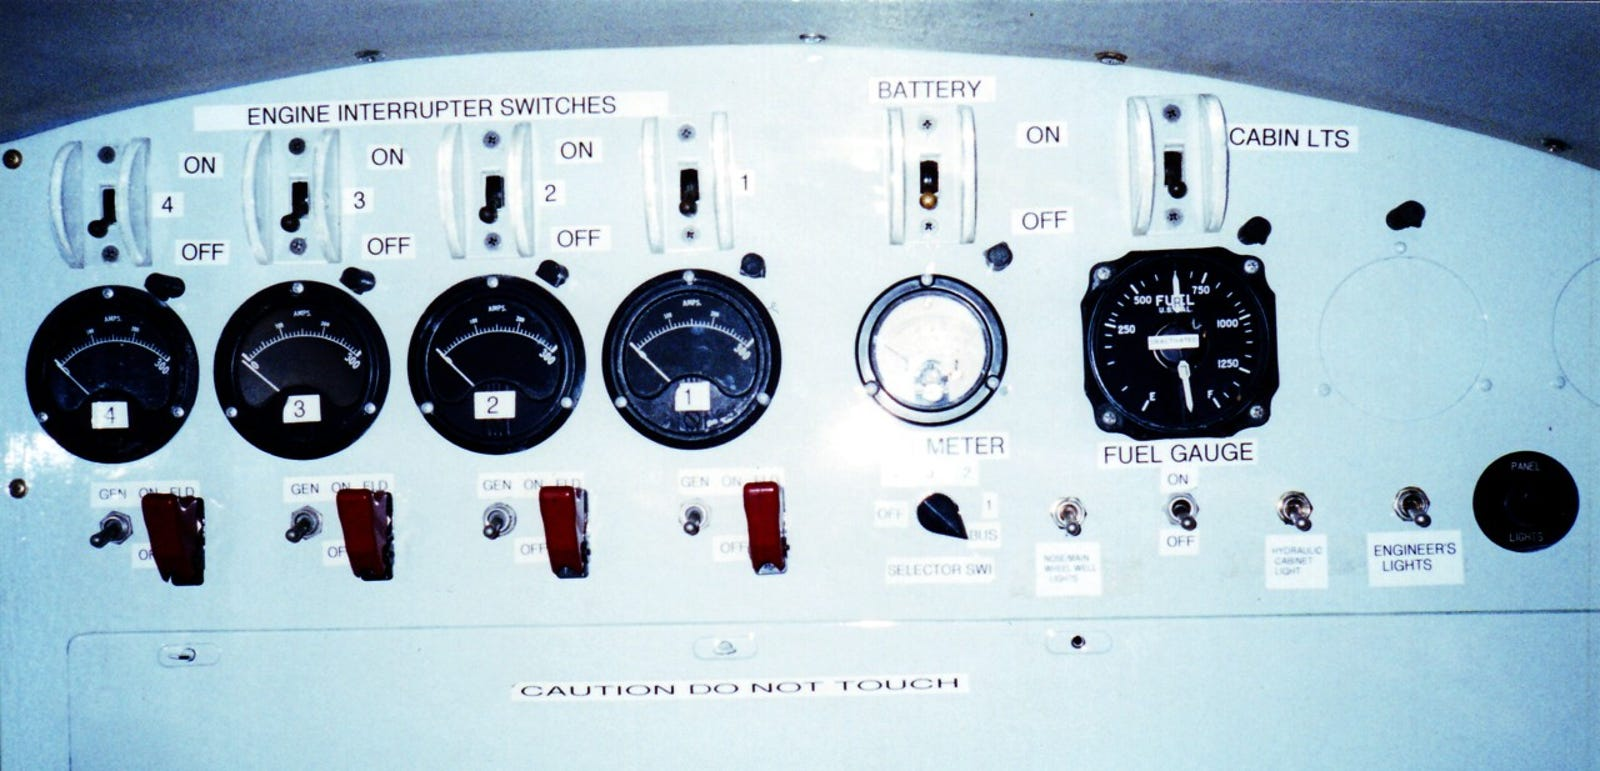 Engine instruments and switches.